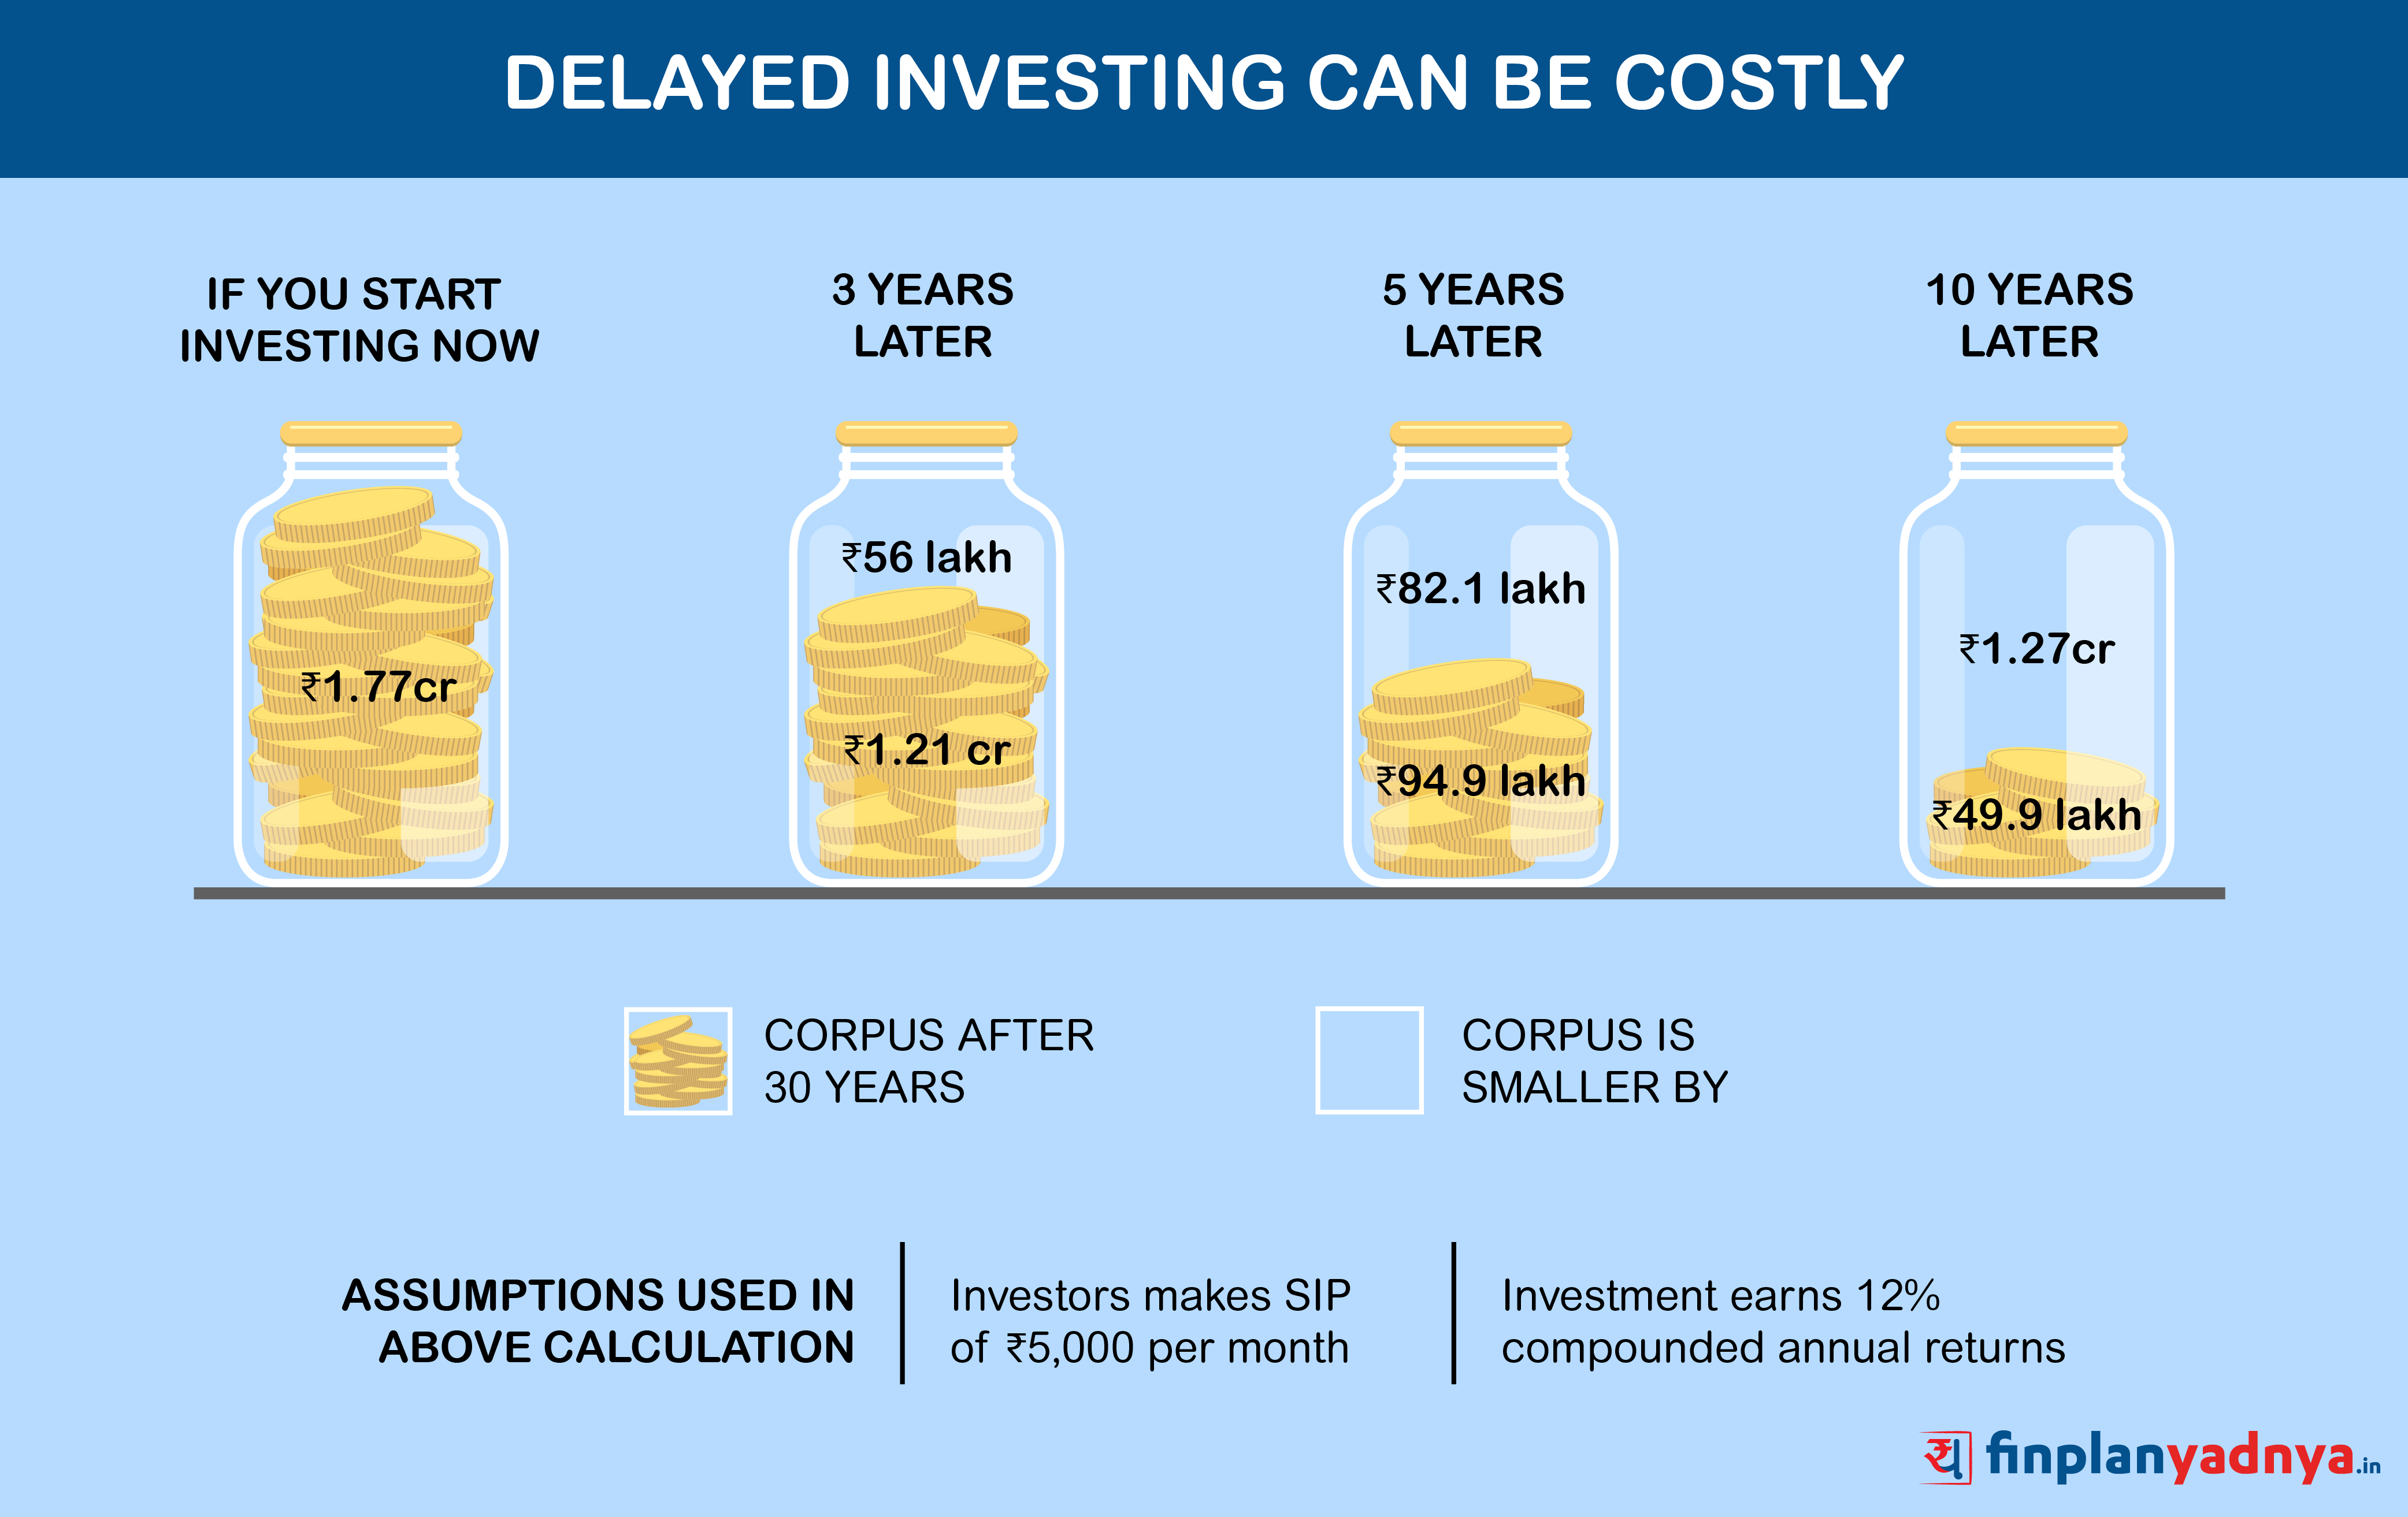 Consequences of delay in investing